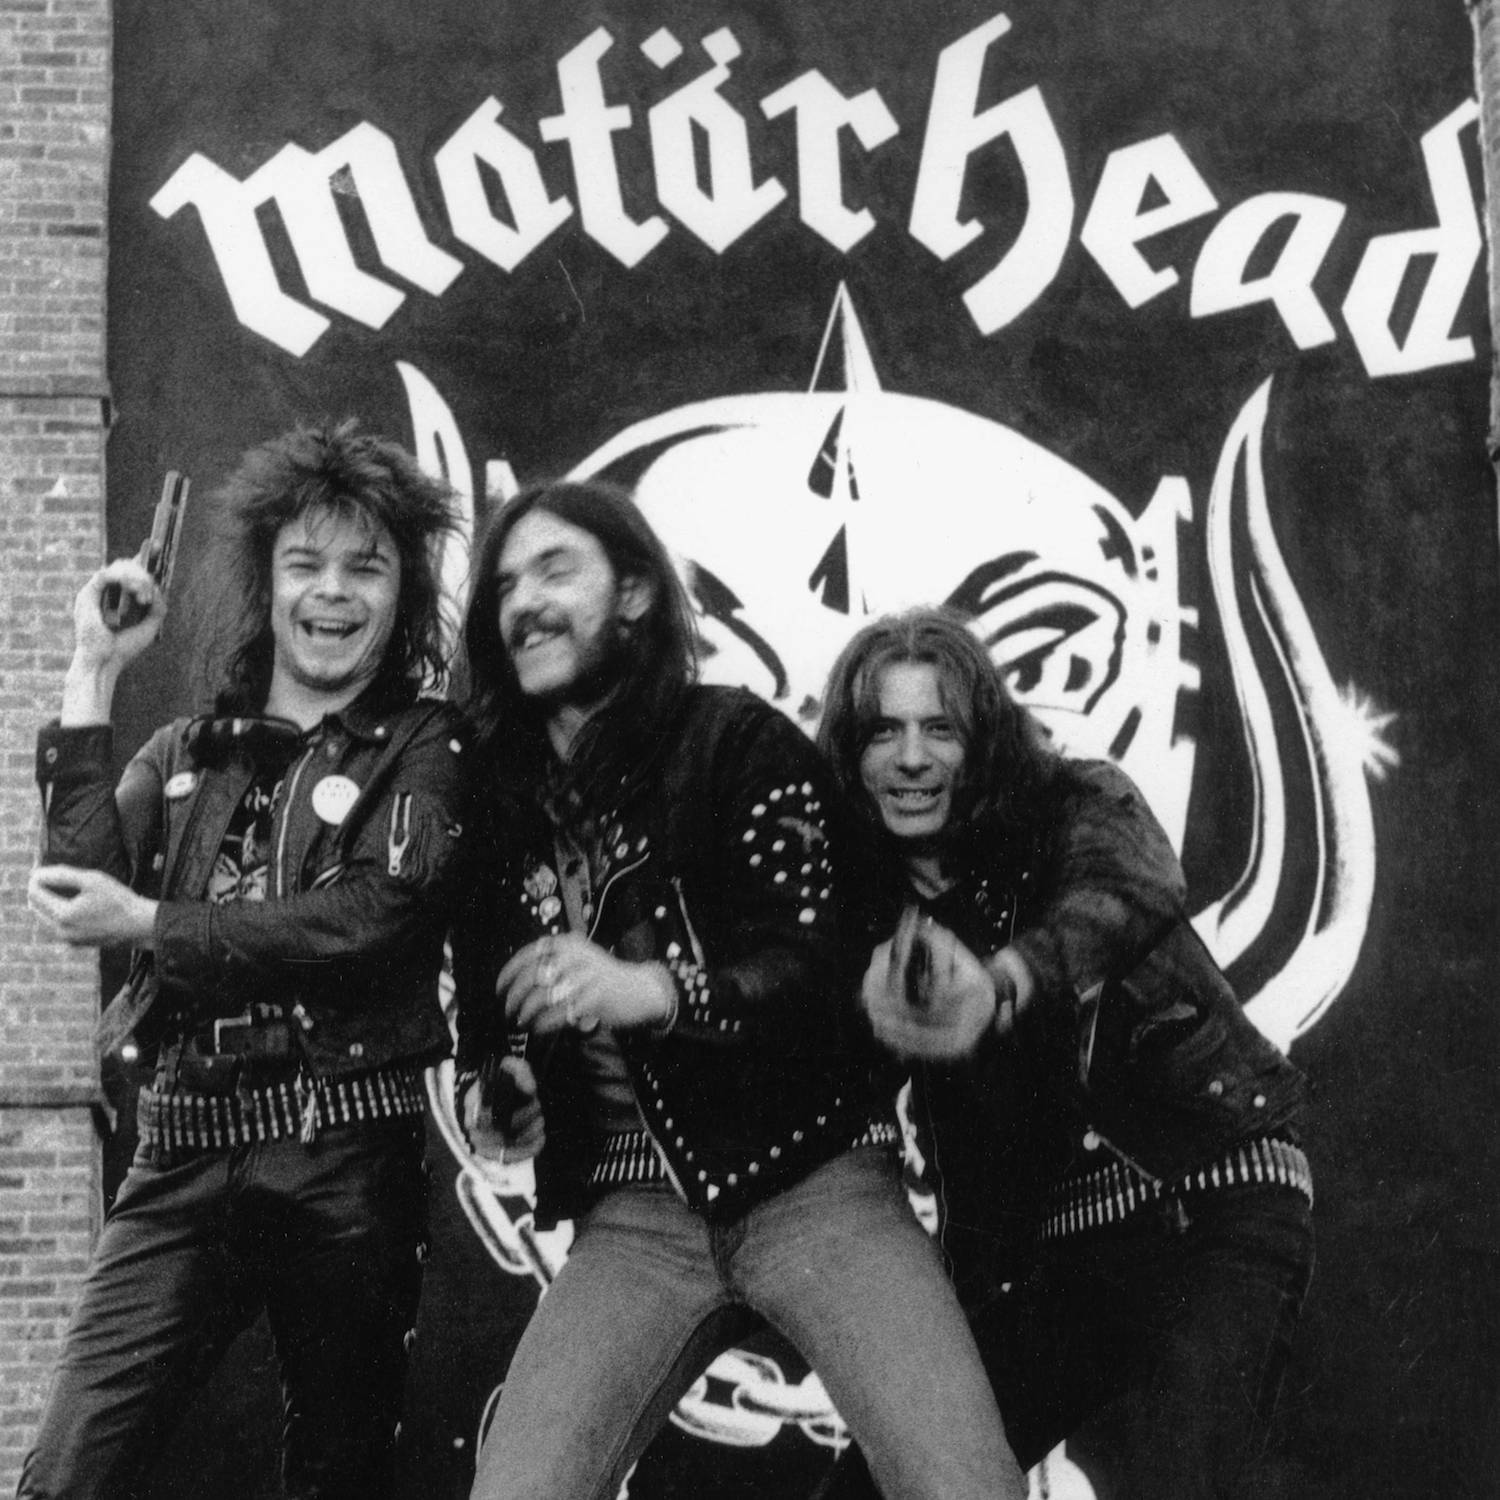 Albums: Motörhead Albums From Worst To Best